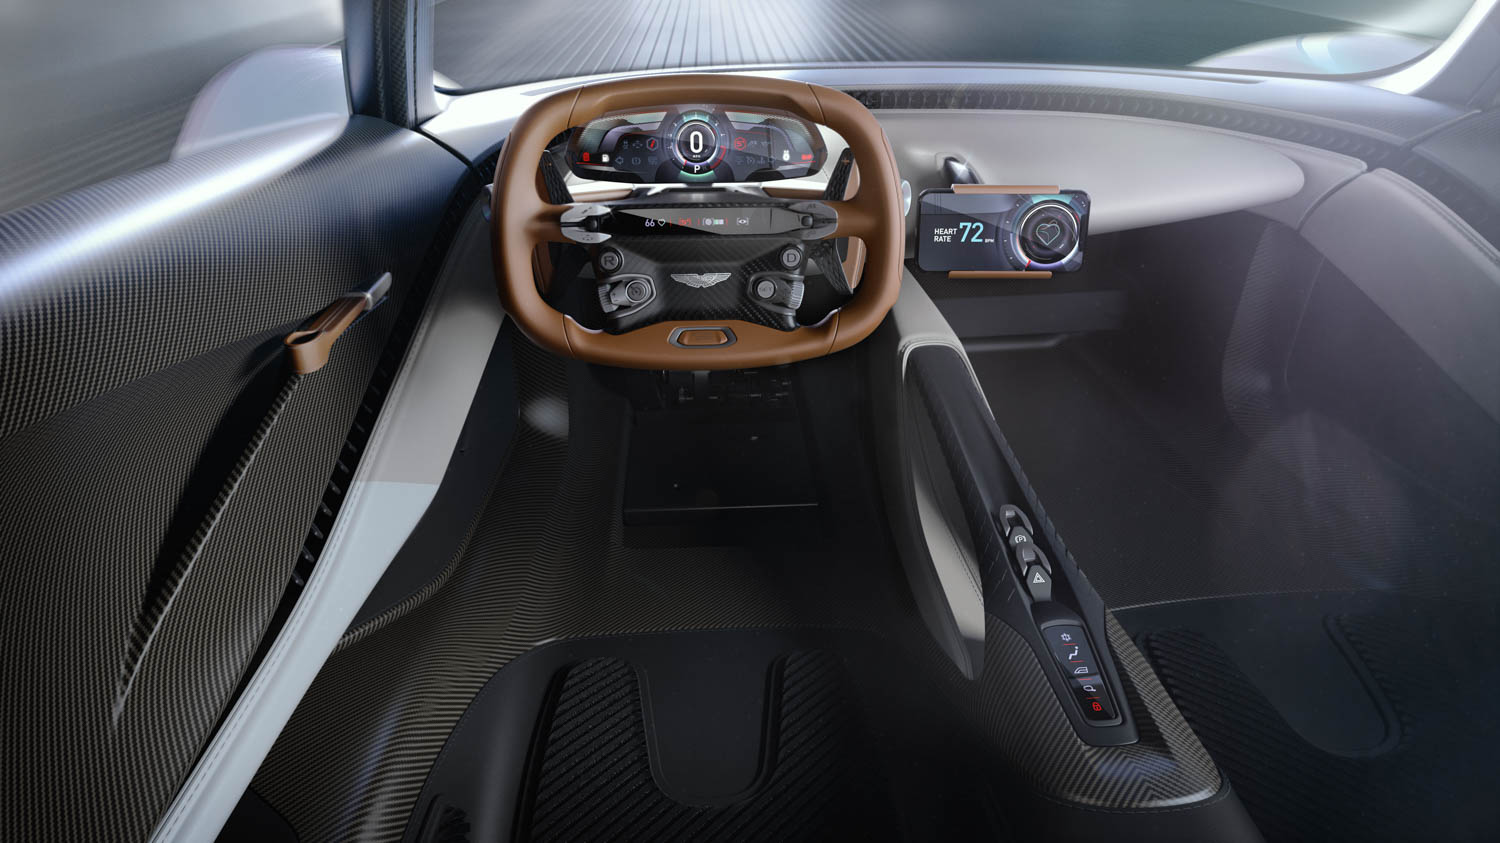 Aston Martin Project 003 steering wheel